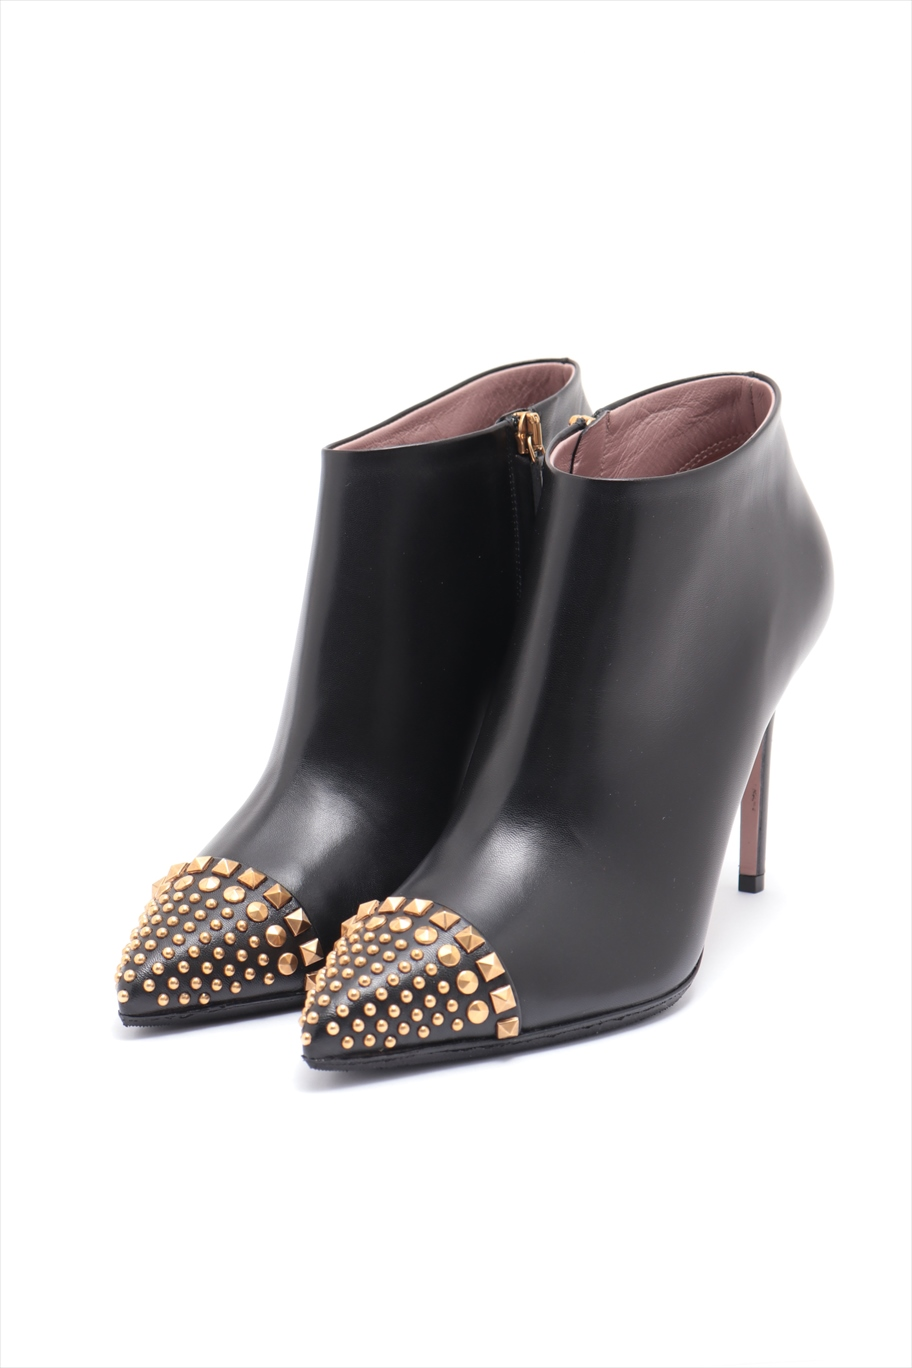 [Used goods] Gucci leather boots 39 Women's black ankle boots Studded Pointed Toe with box